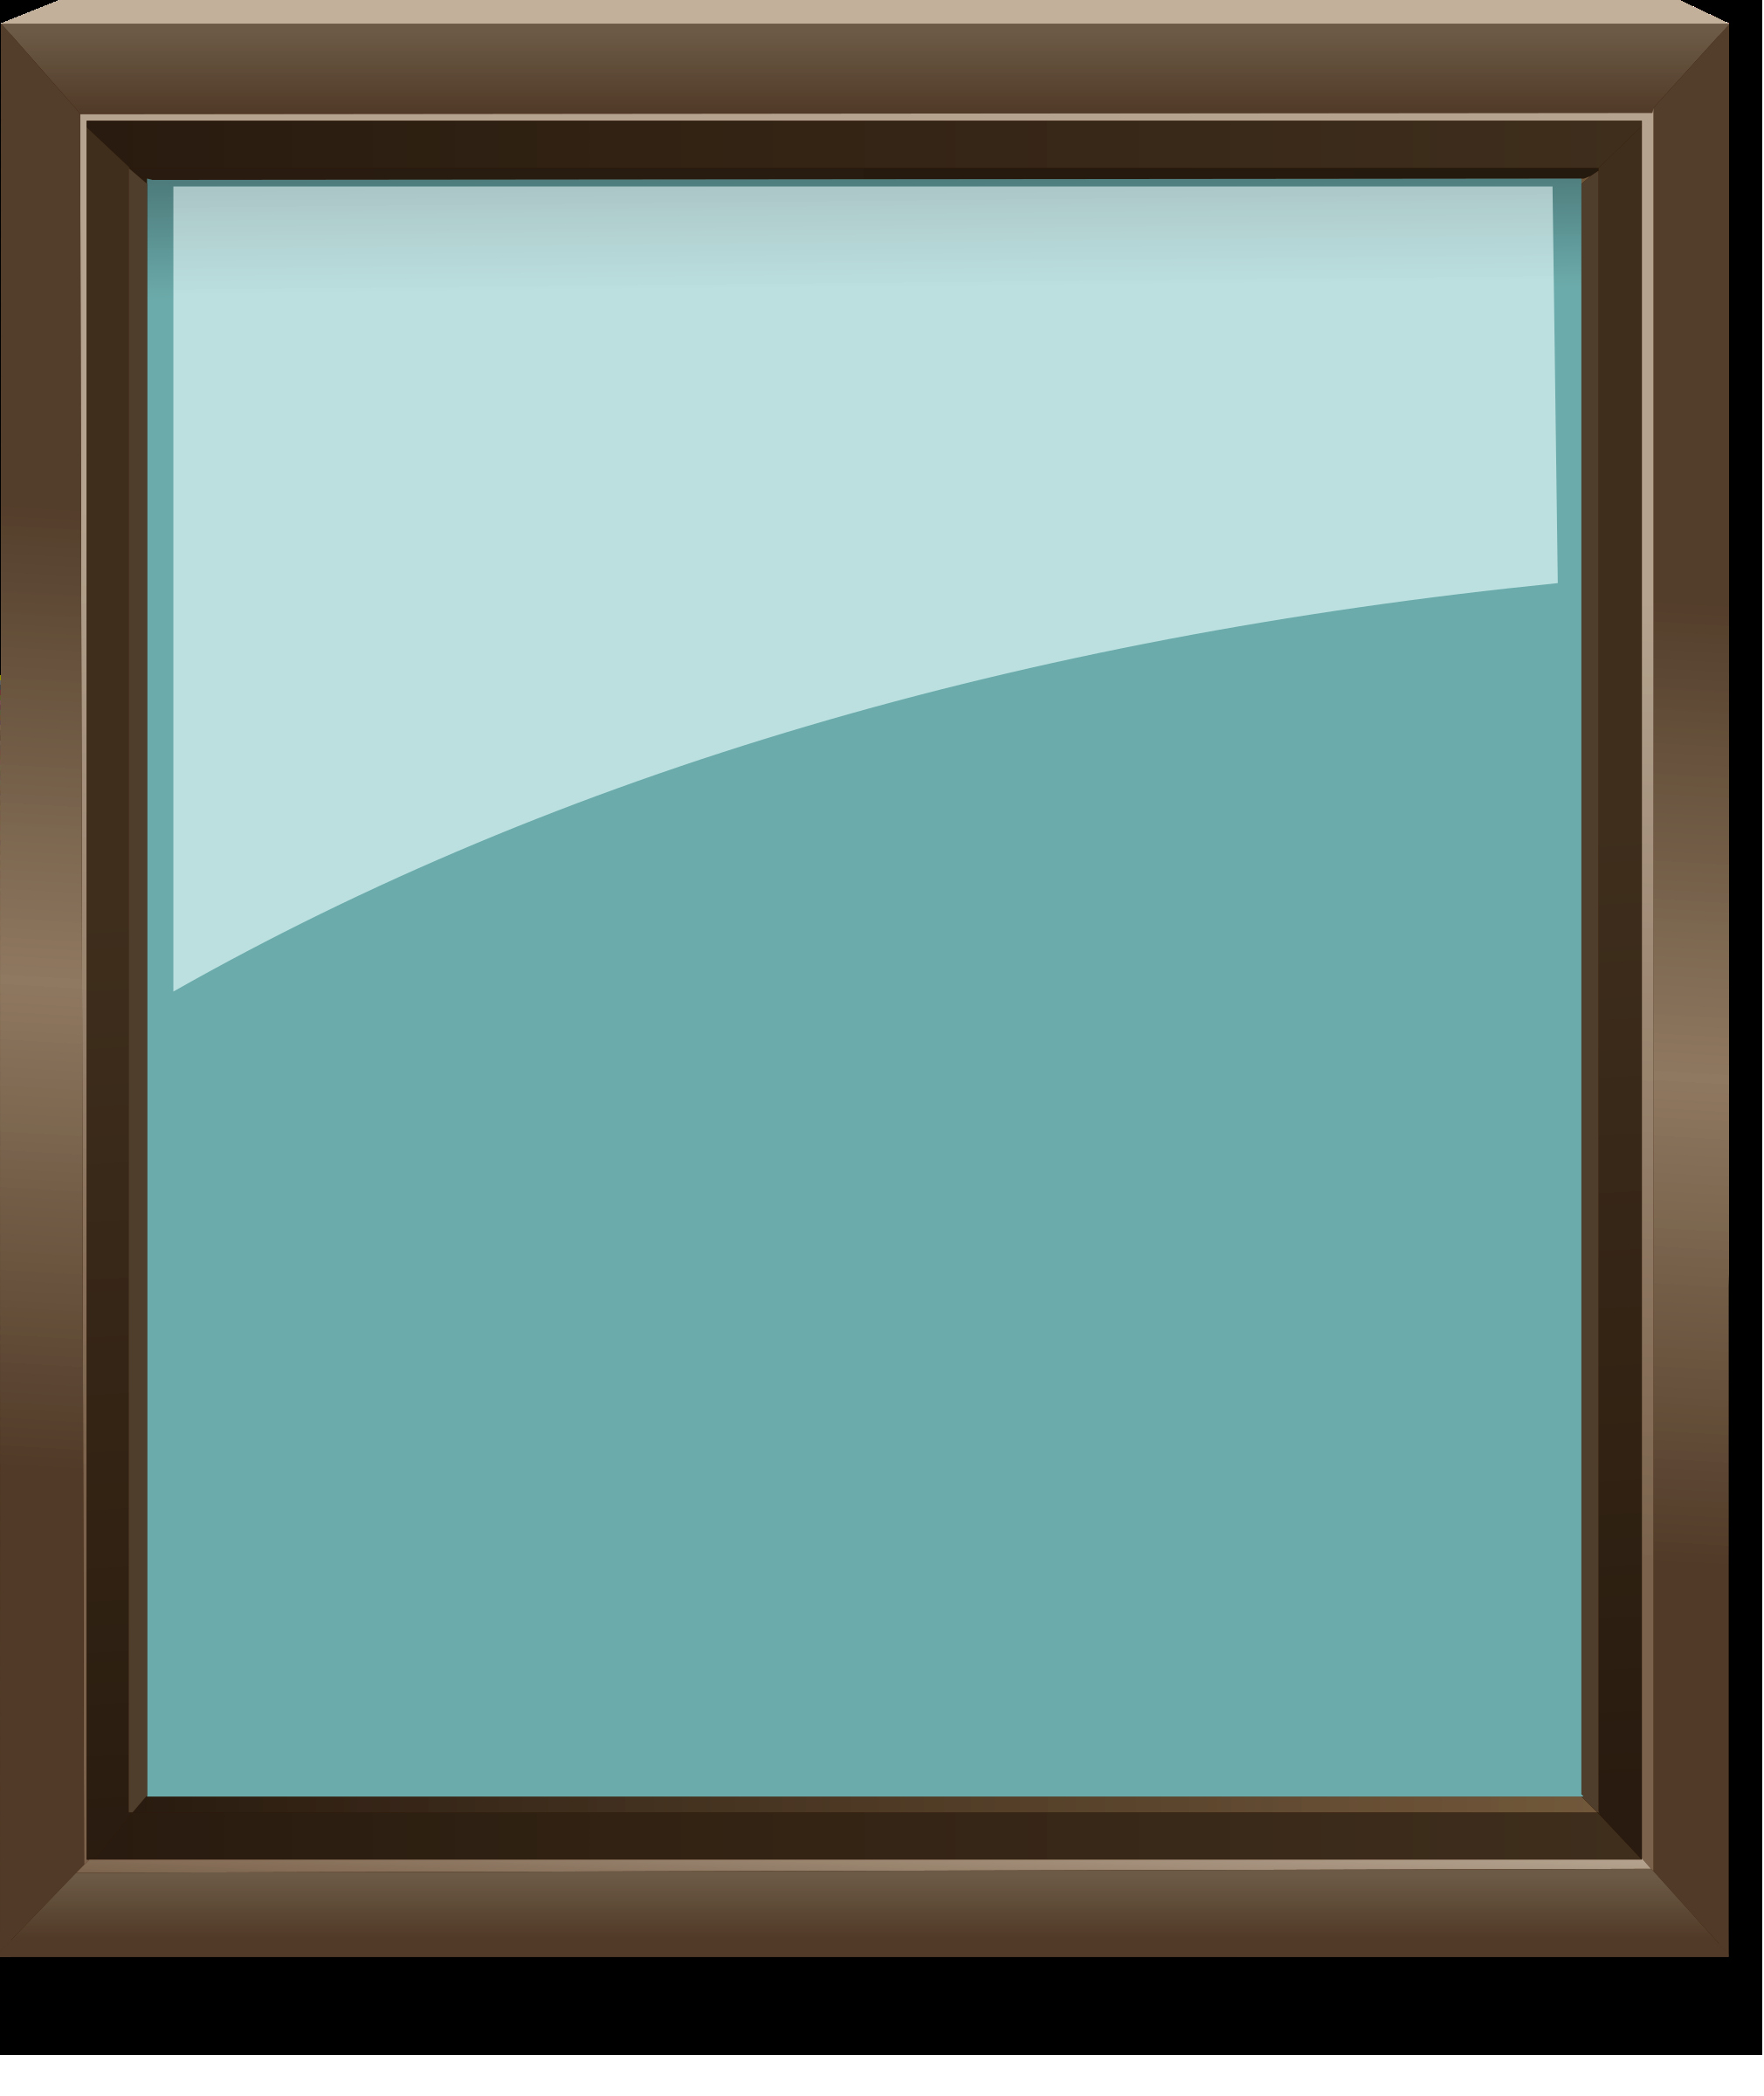 Picture Frame Vector Beautiful Glass Picture Frame Vector Clipart Image Free Stock